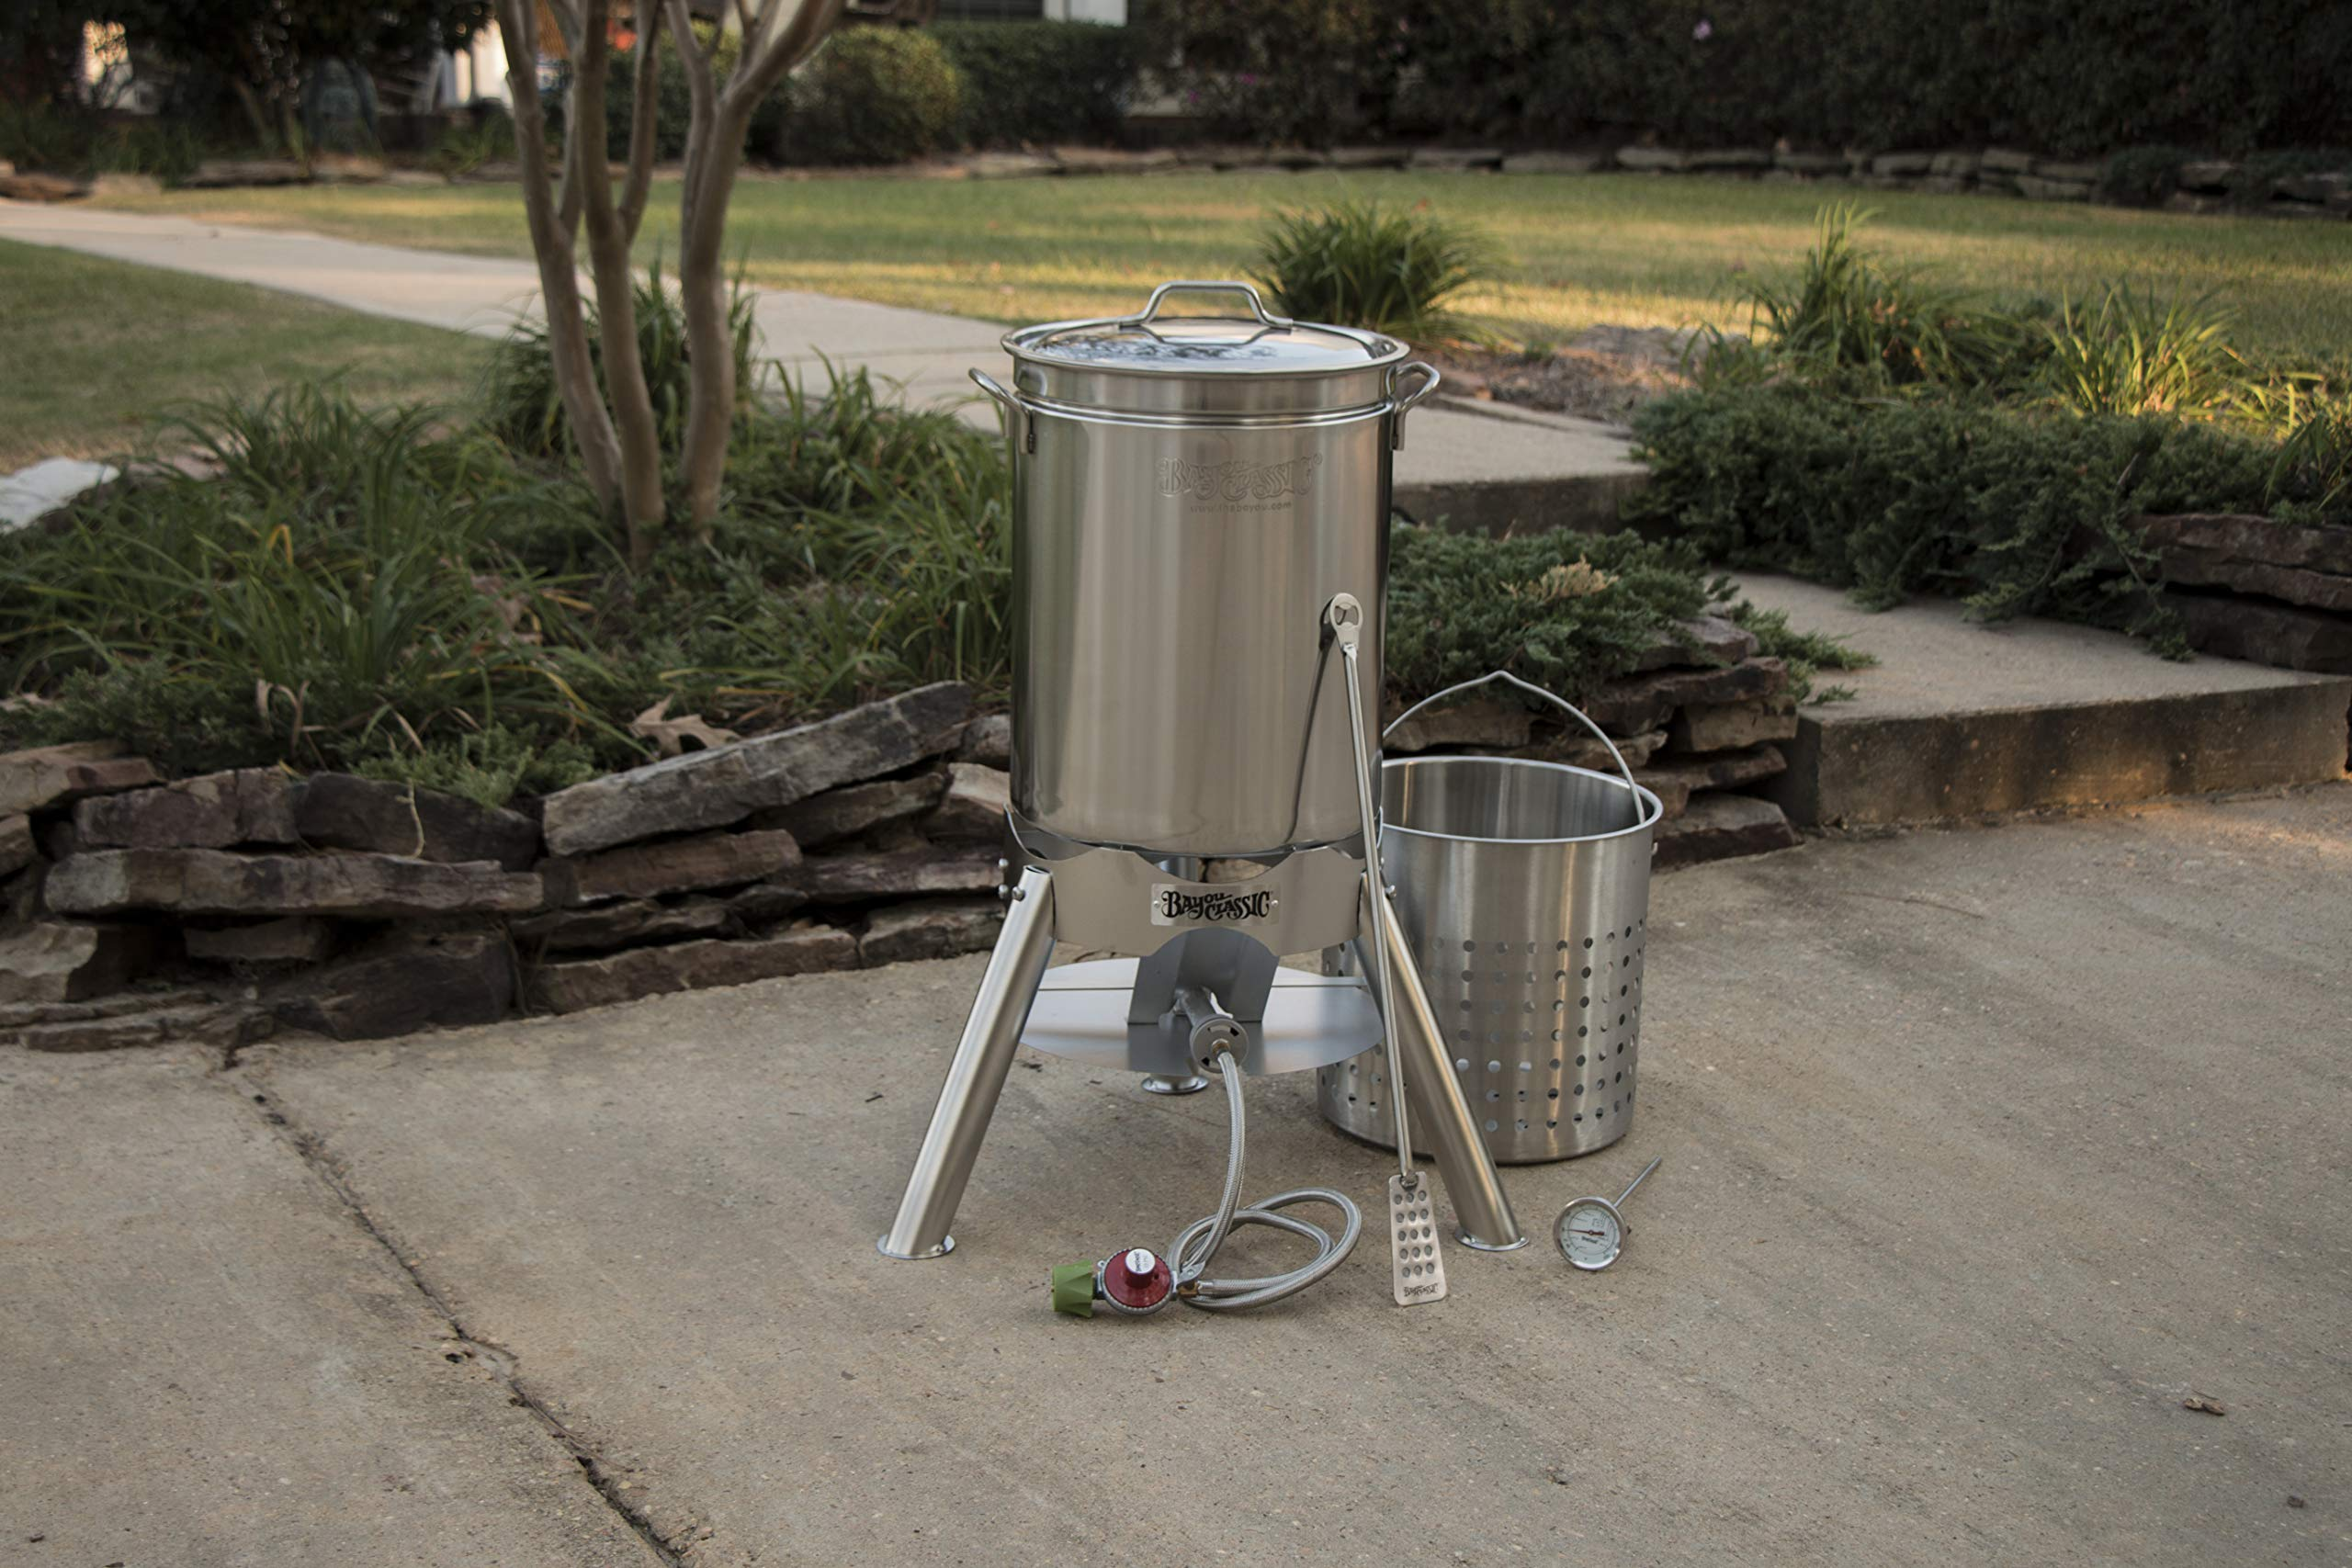 Bayou Classic 800-144 44 quart Boil and Brew, Stainless by Bayou Classic